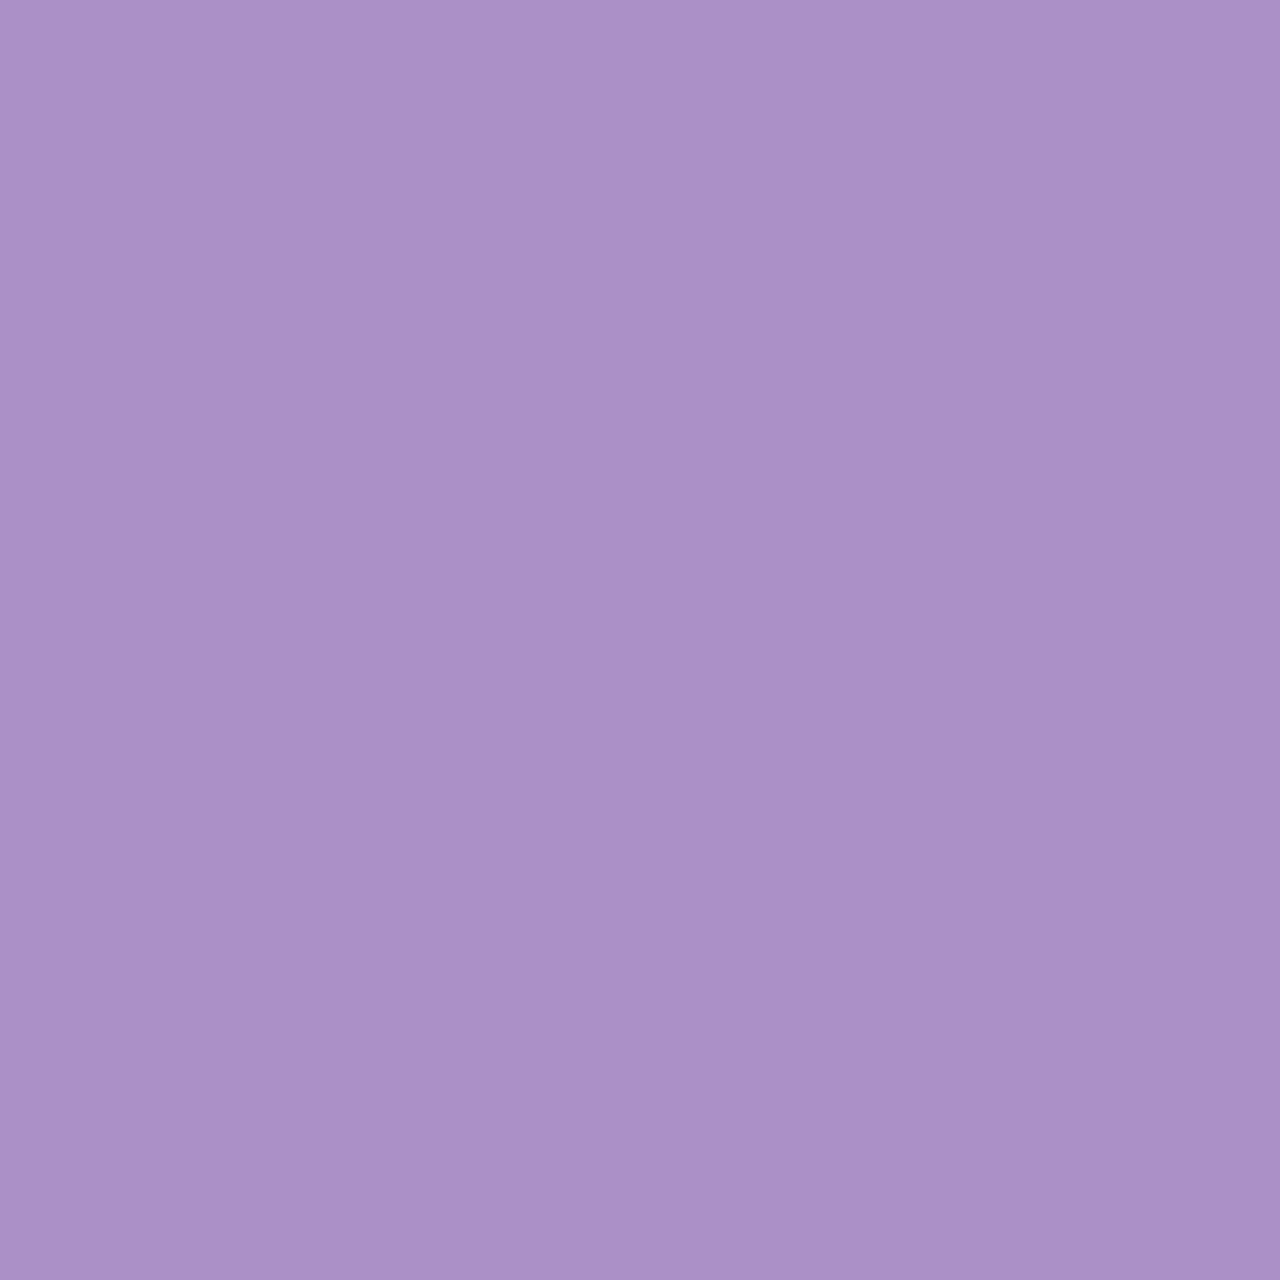 #4930 Rosco Gels Roscolux CalColor 30 Lavender, 20x24""